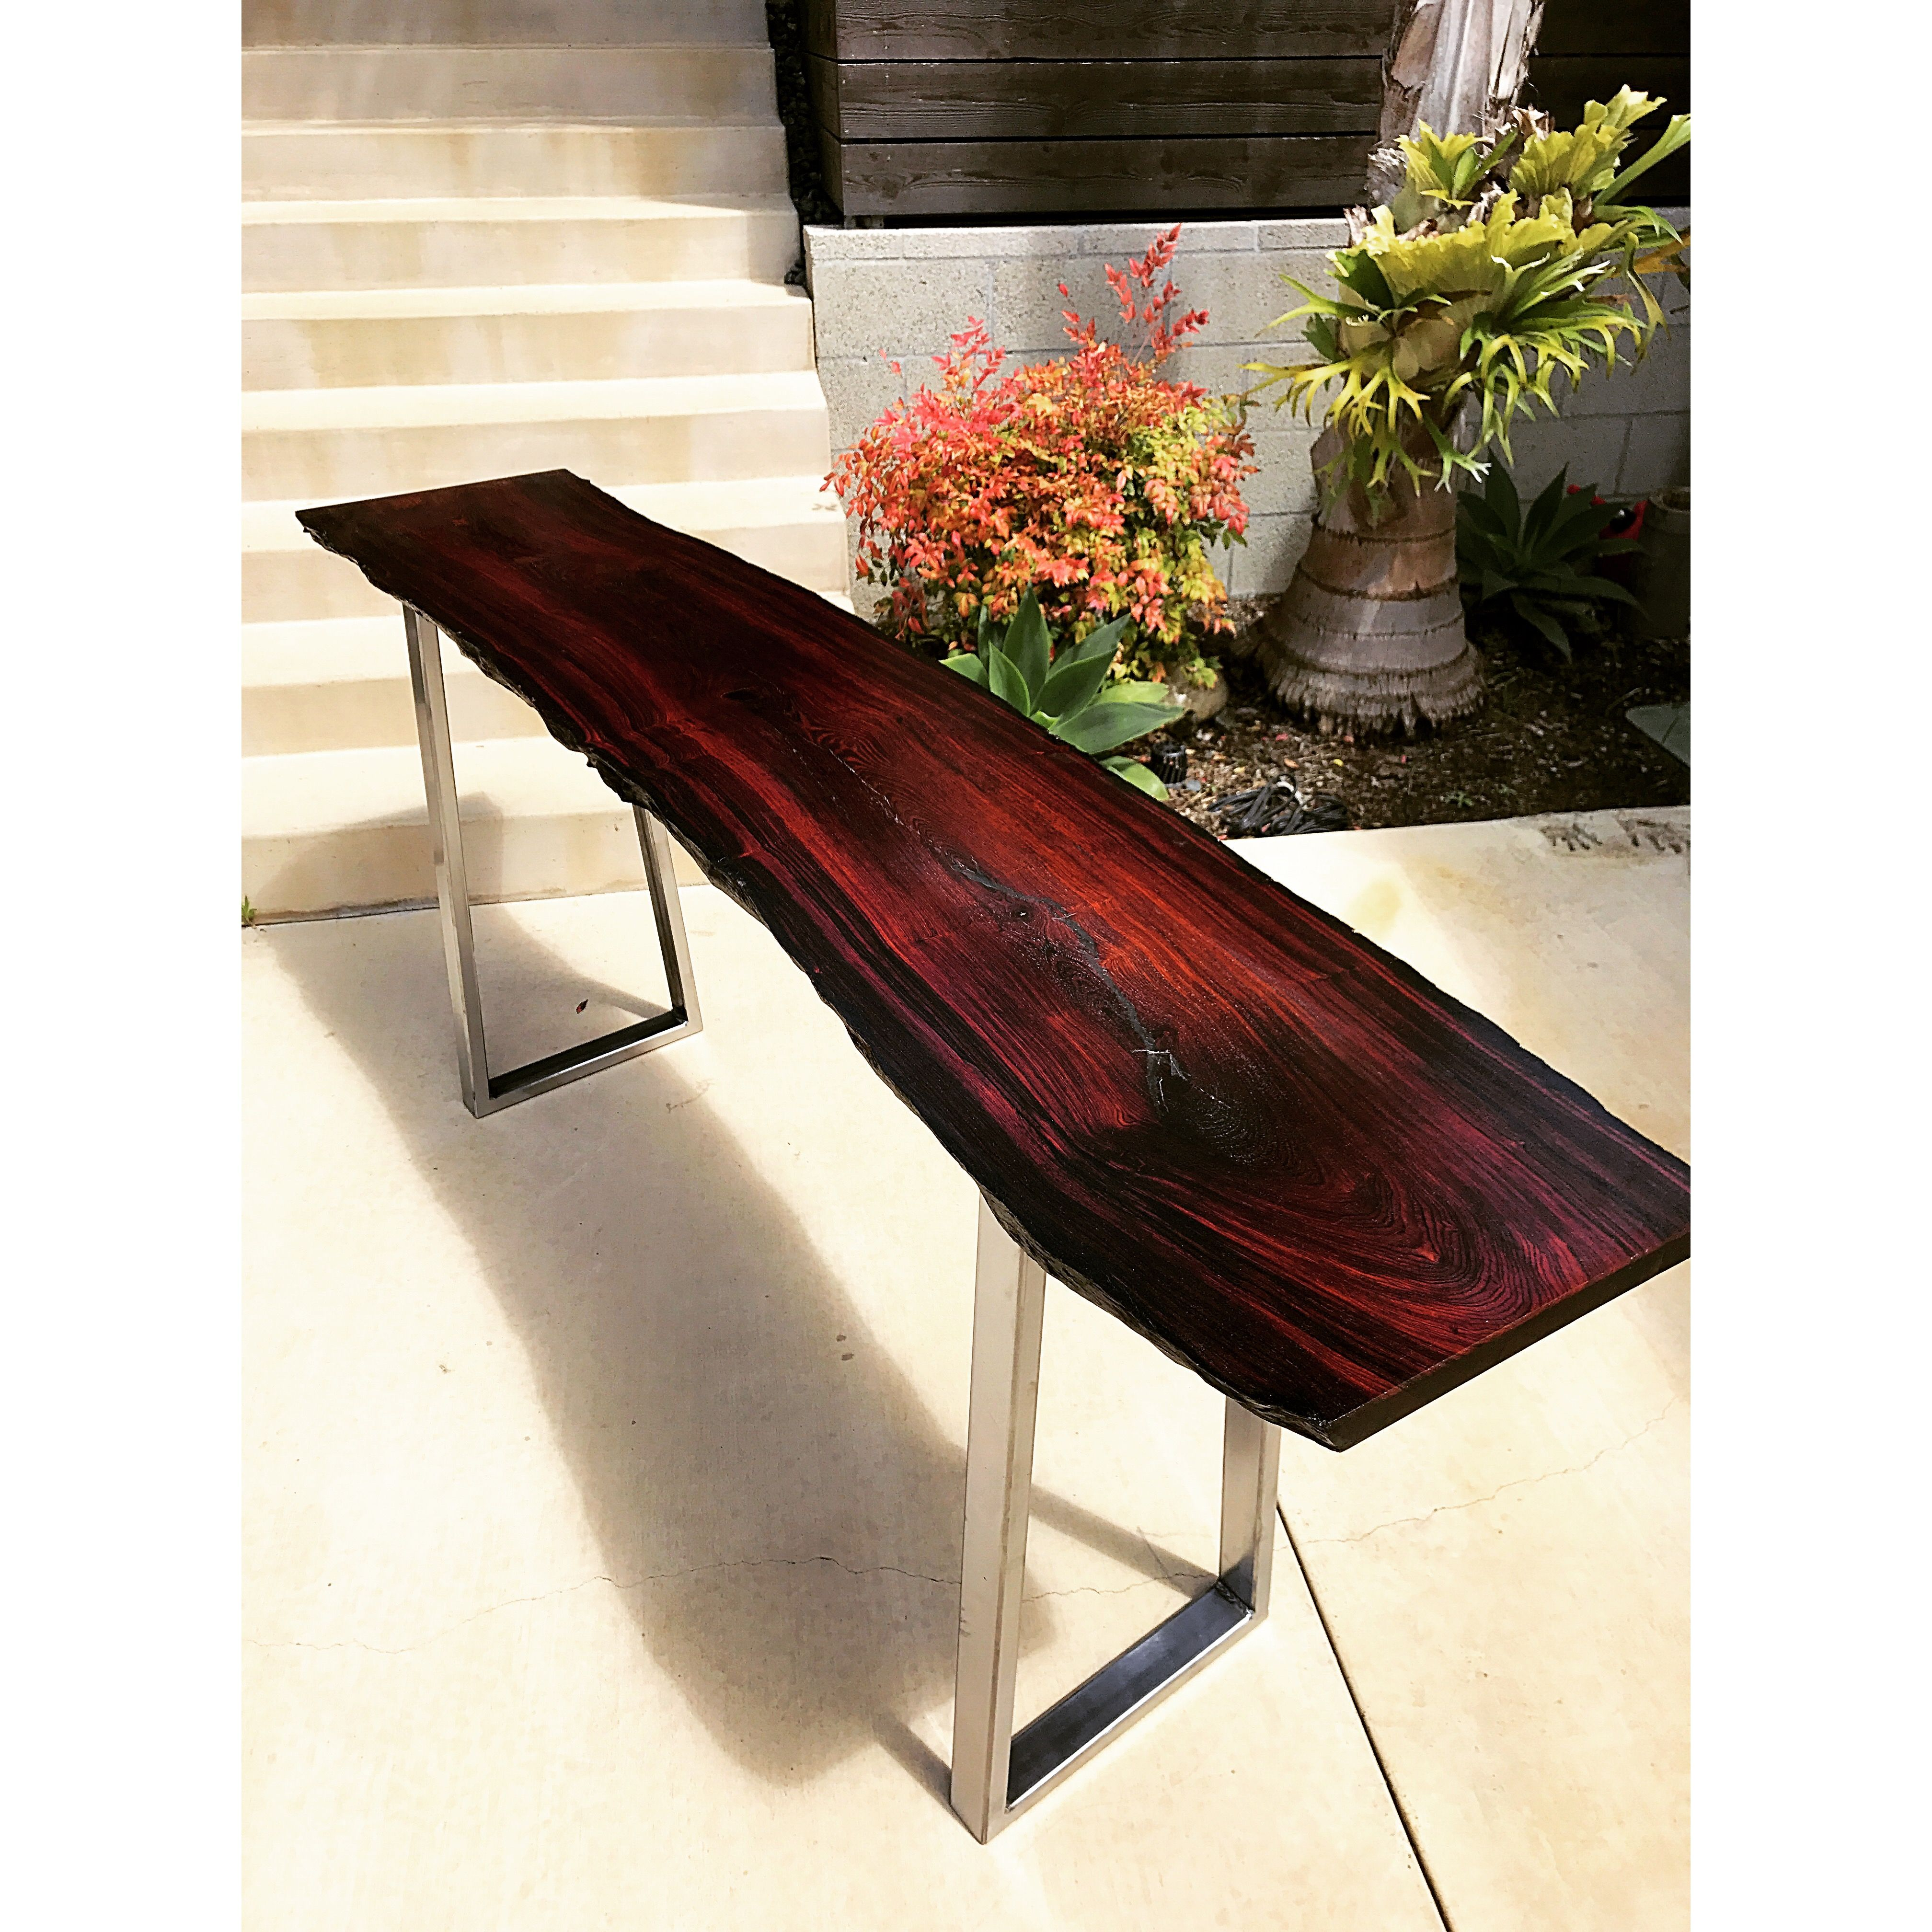 modern ivmftqi console for online in oak living hayneedle australia next white altoonsole land drawersheap at uk drawers furniture bartlett ikea alto glass natural with sale tables dublin belham unusual canada table storage solid malaysia